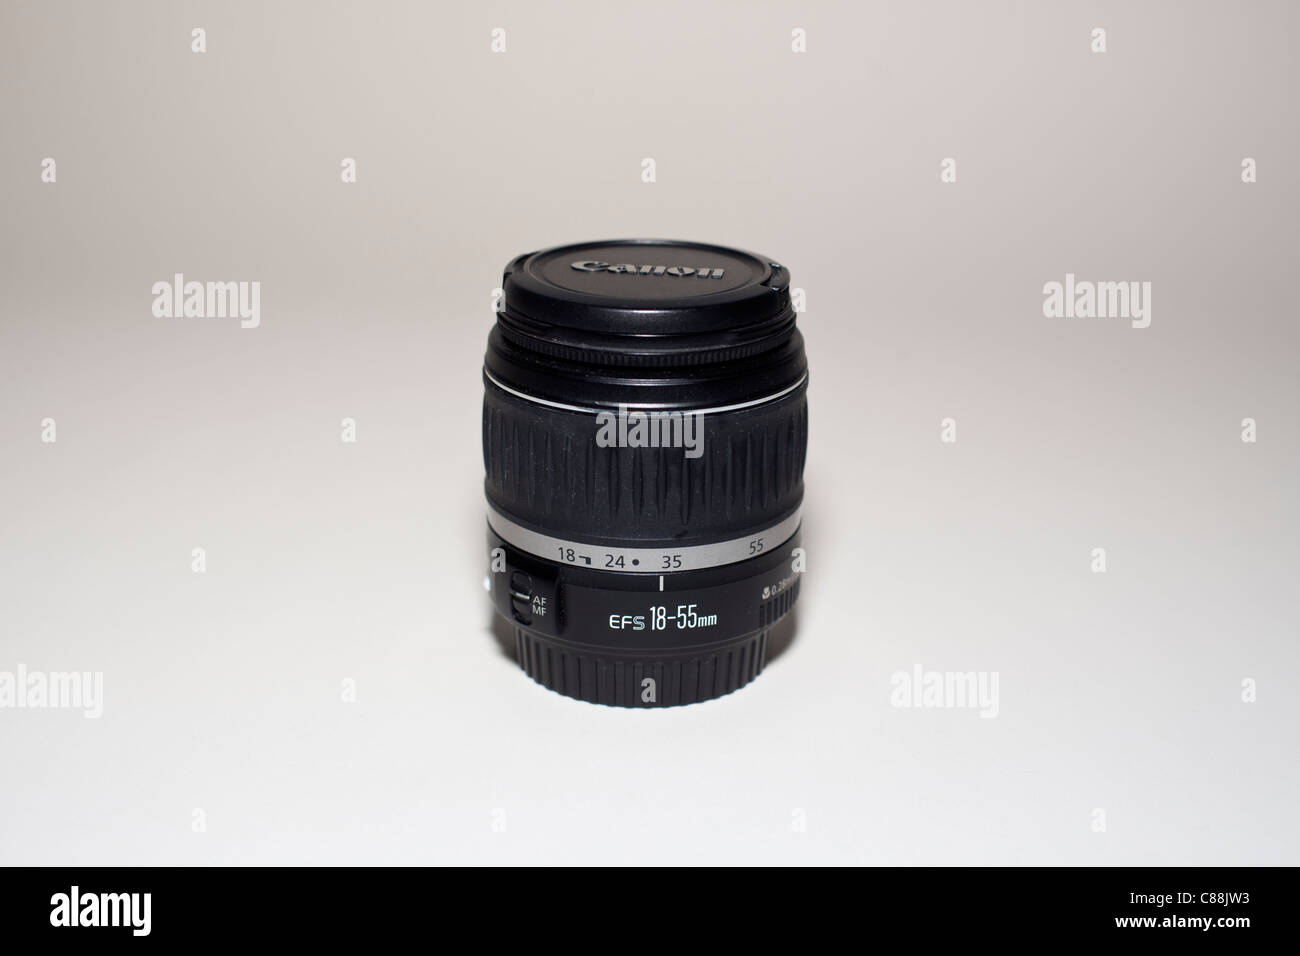 Canon EF-S 18-55mm f/3.5-5.6 photography lens Stock Photo